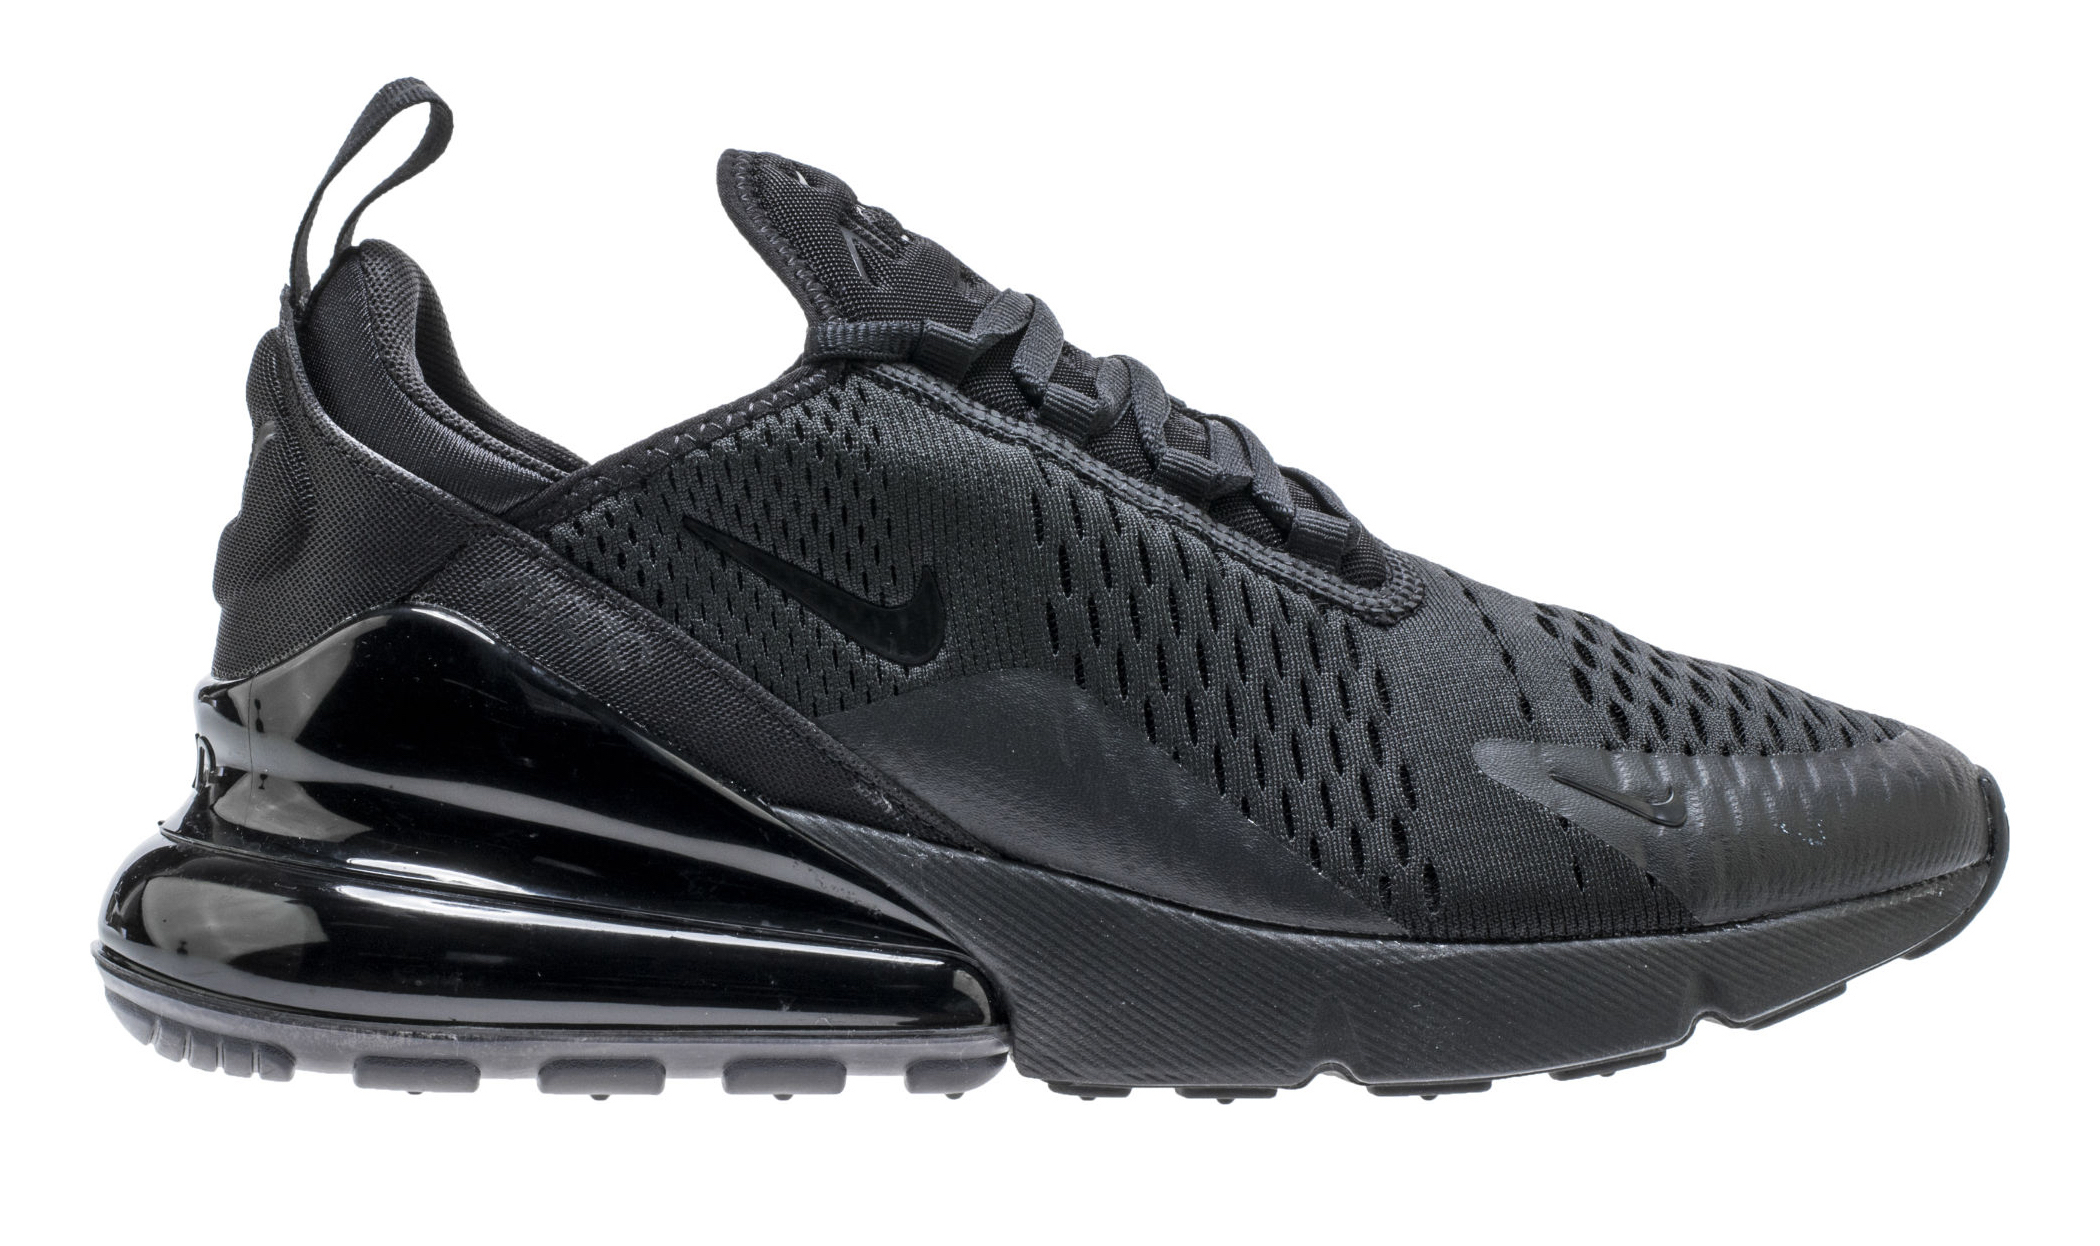 Nike Air Max 270 Triple Black Dropping In March